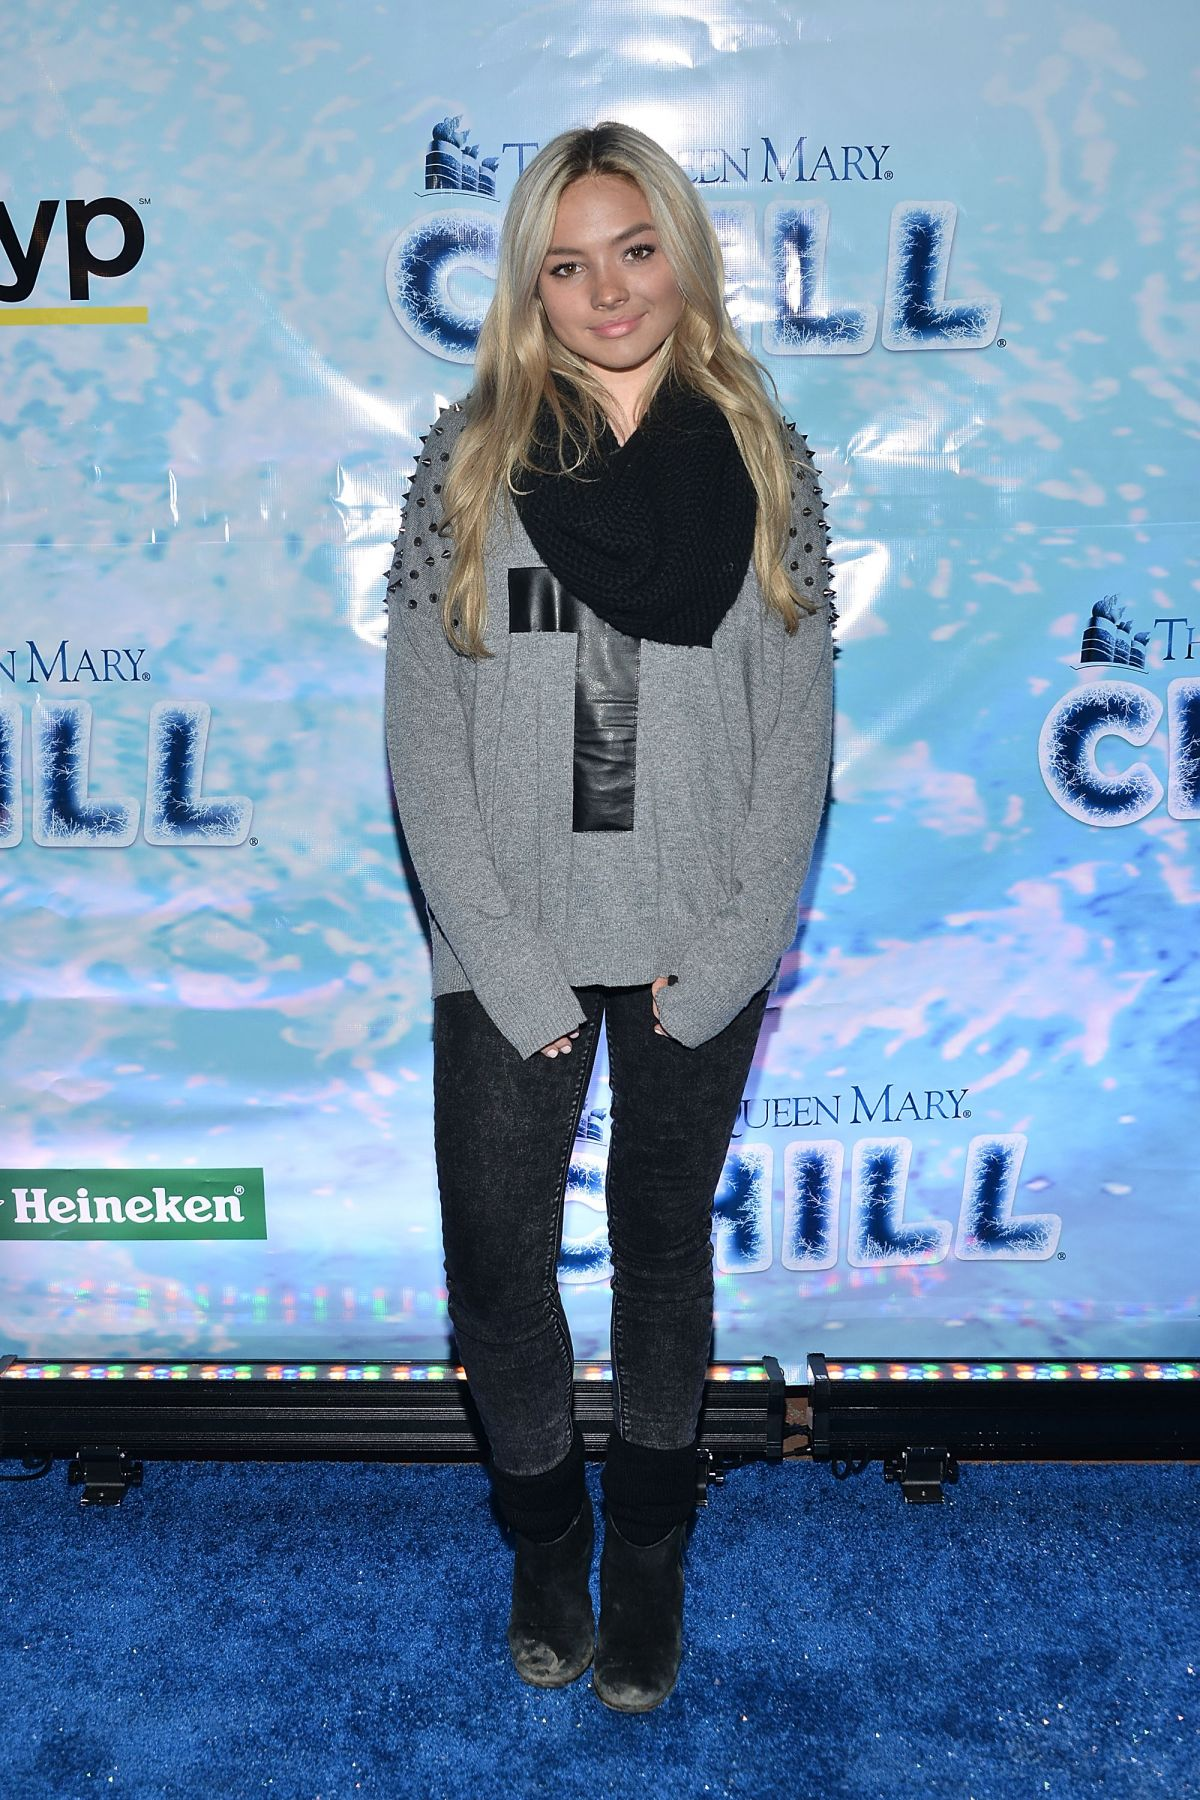 NATALIE ALYN LIND at Queen Mary's CHILL Freezes Over SoCal in Long Beach 11/20/2015